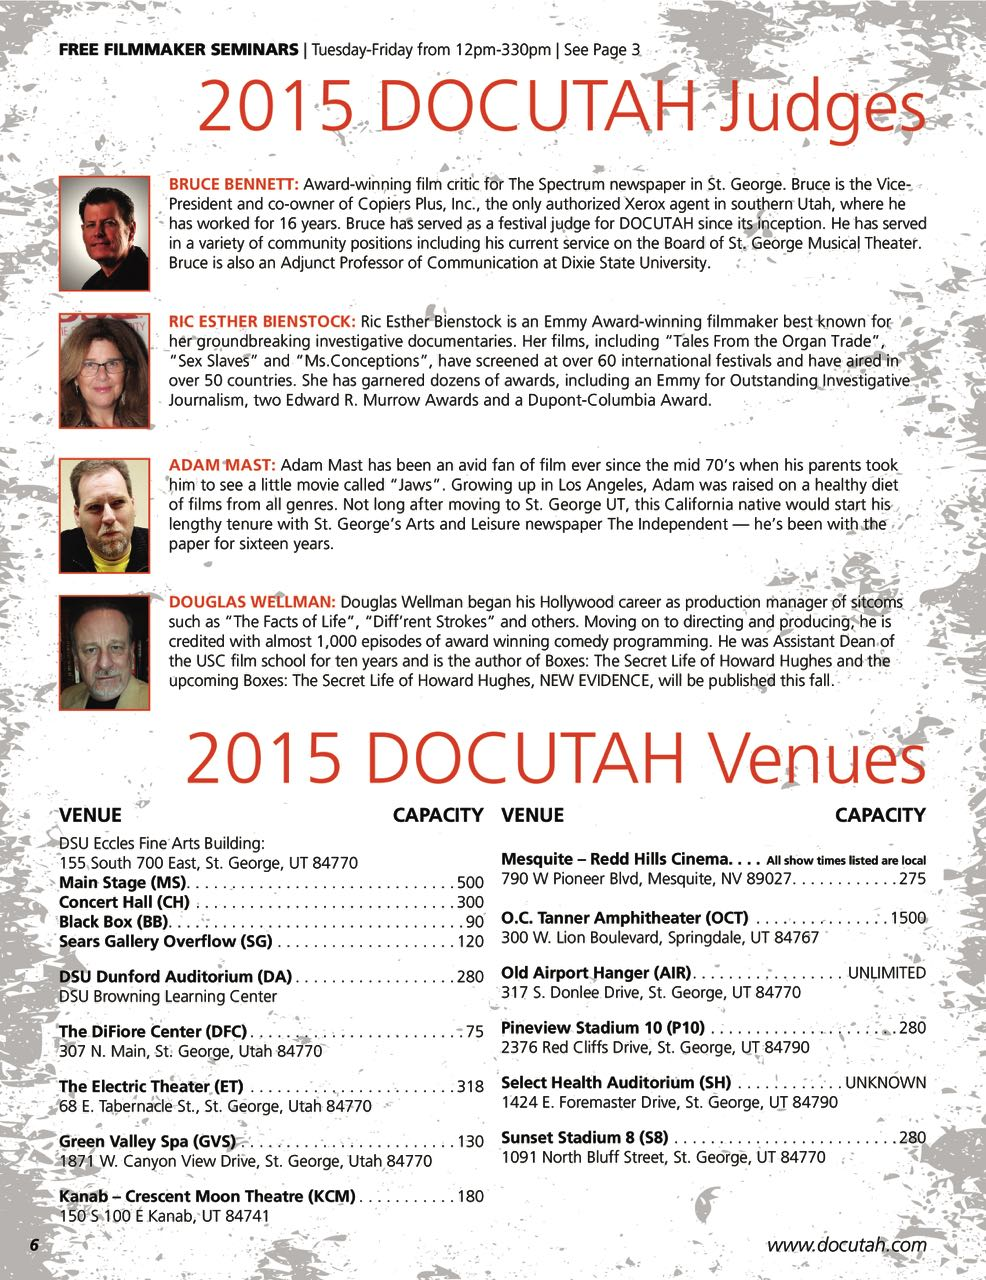 2015_DOCUTAH-Festival-Guide_NO-BLEED-page-5.jpg